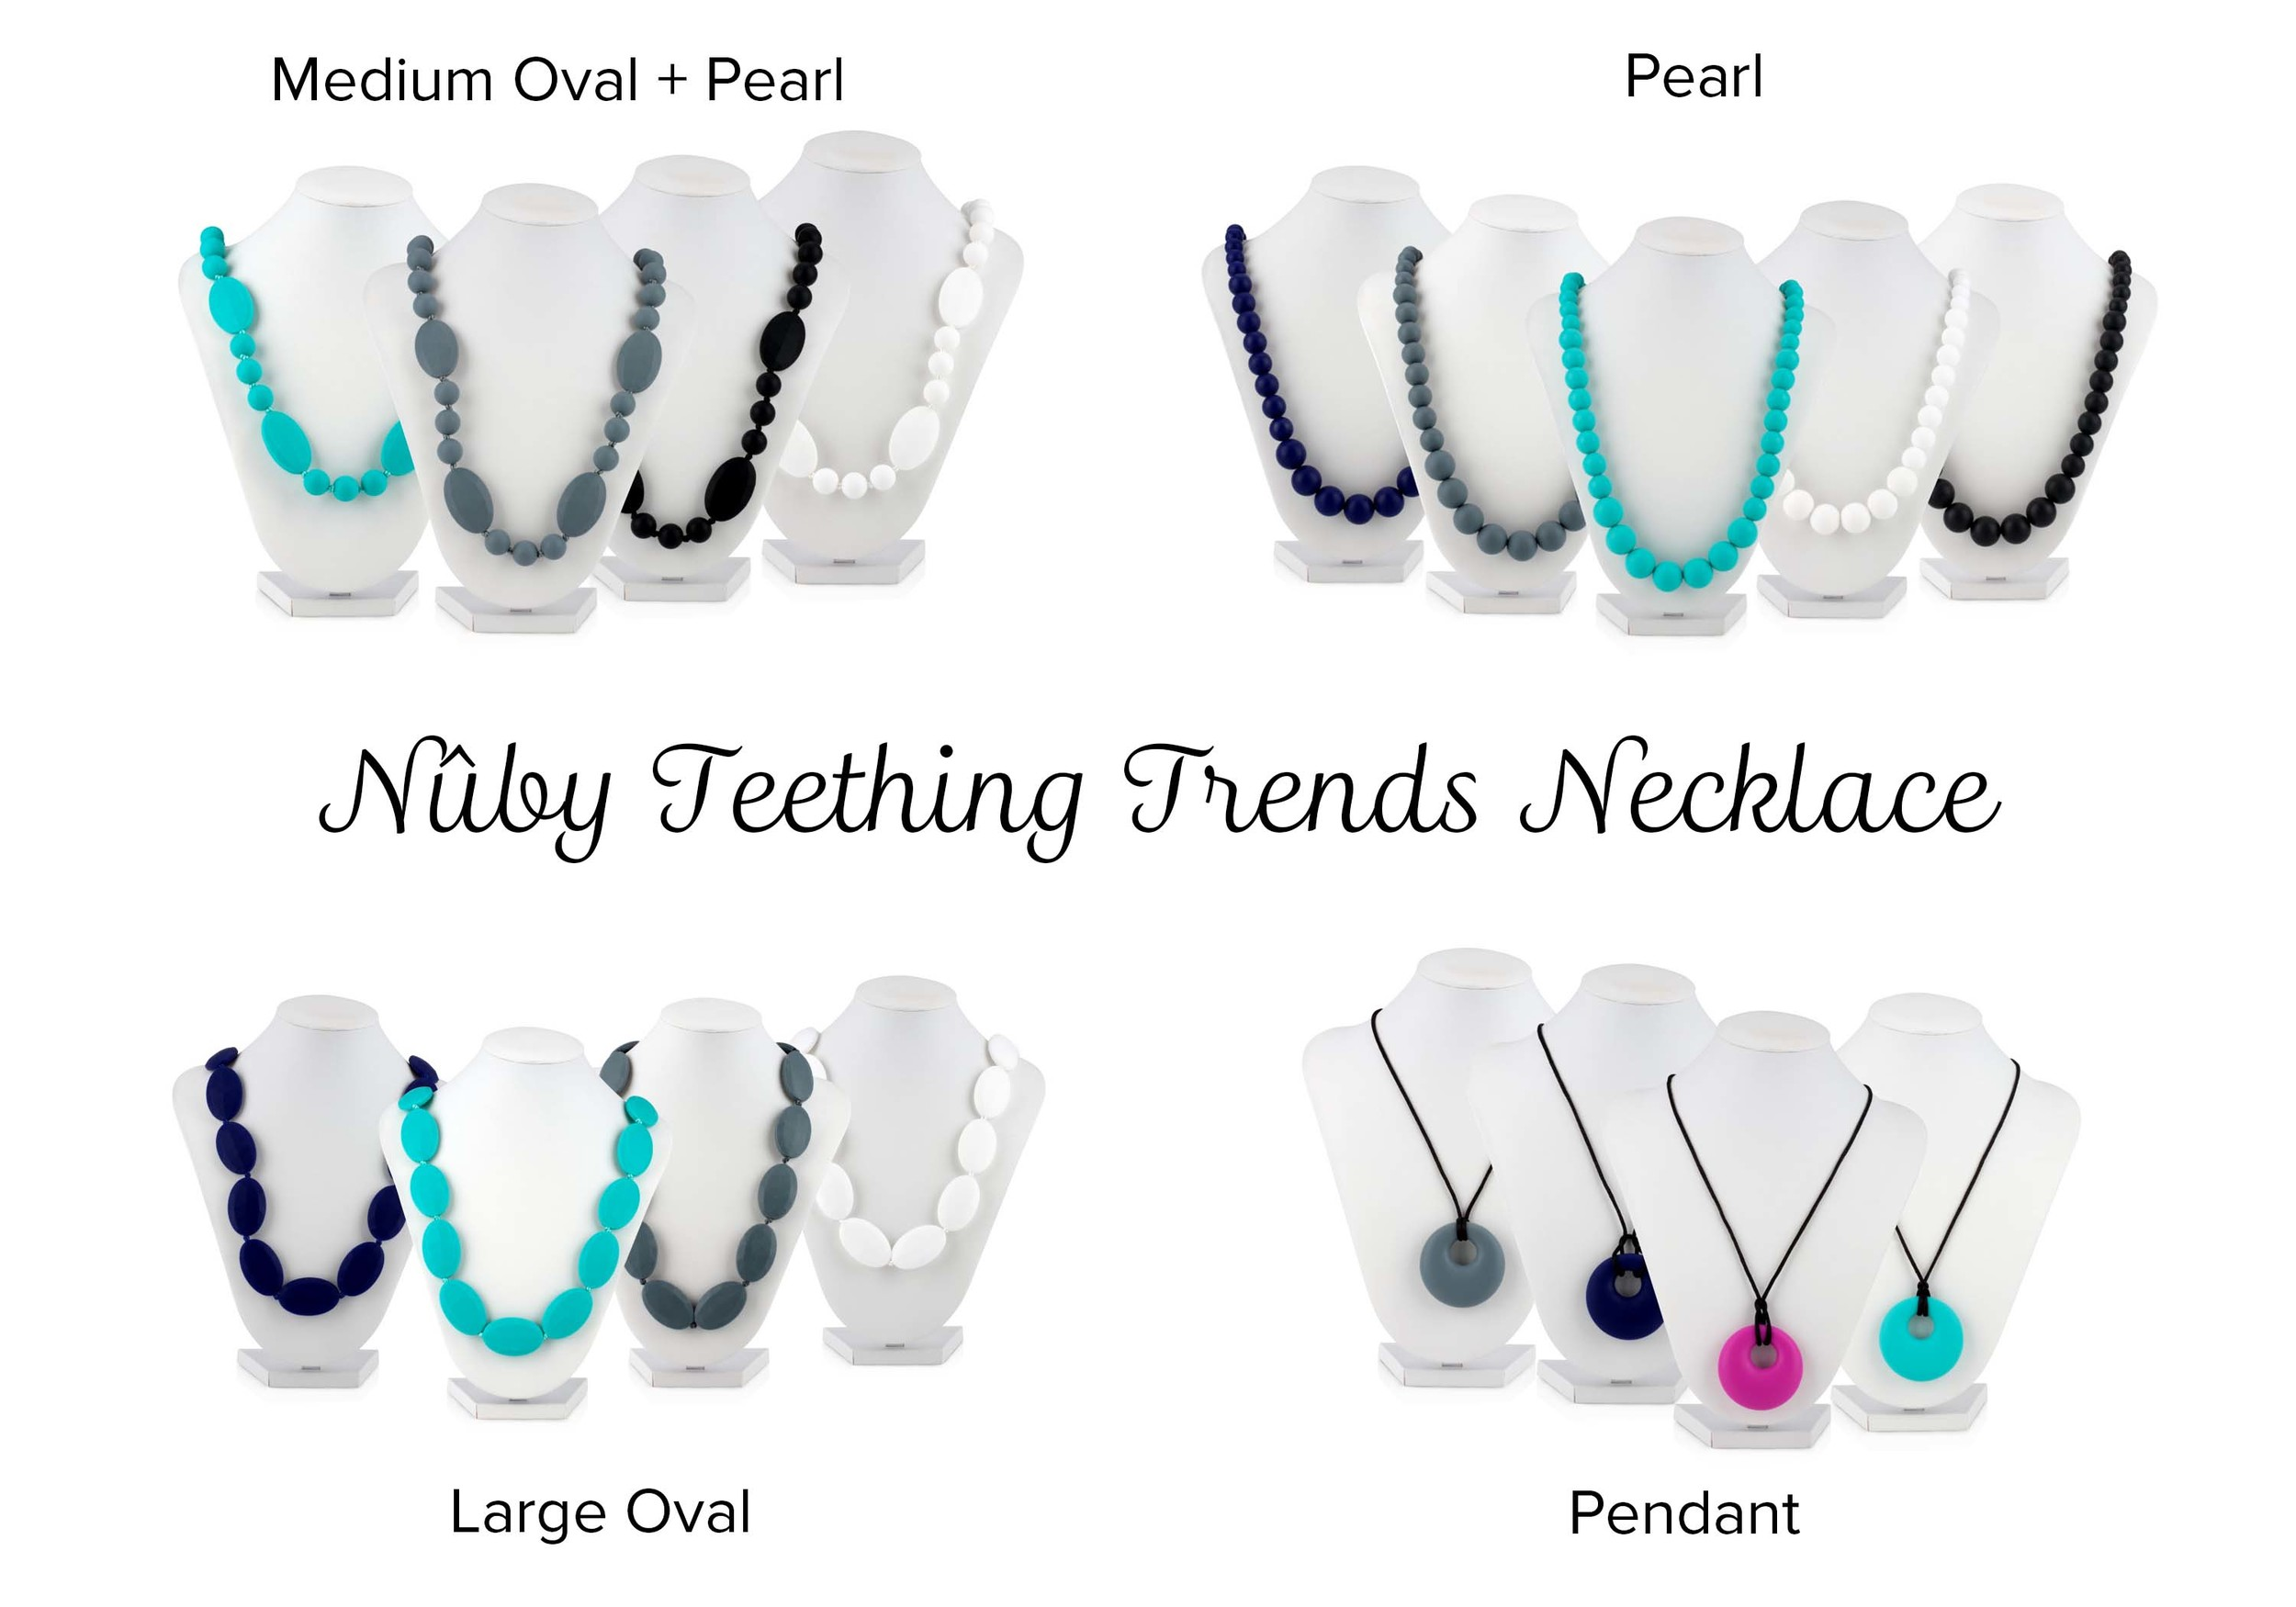 Nuby Teething Trends Giveaway - winner will receive one necklace of their choice!